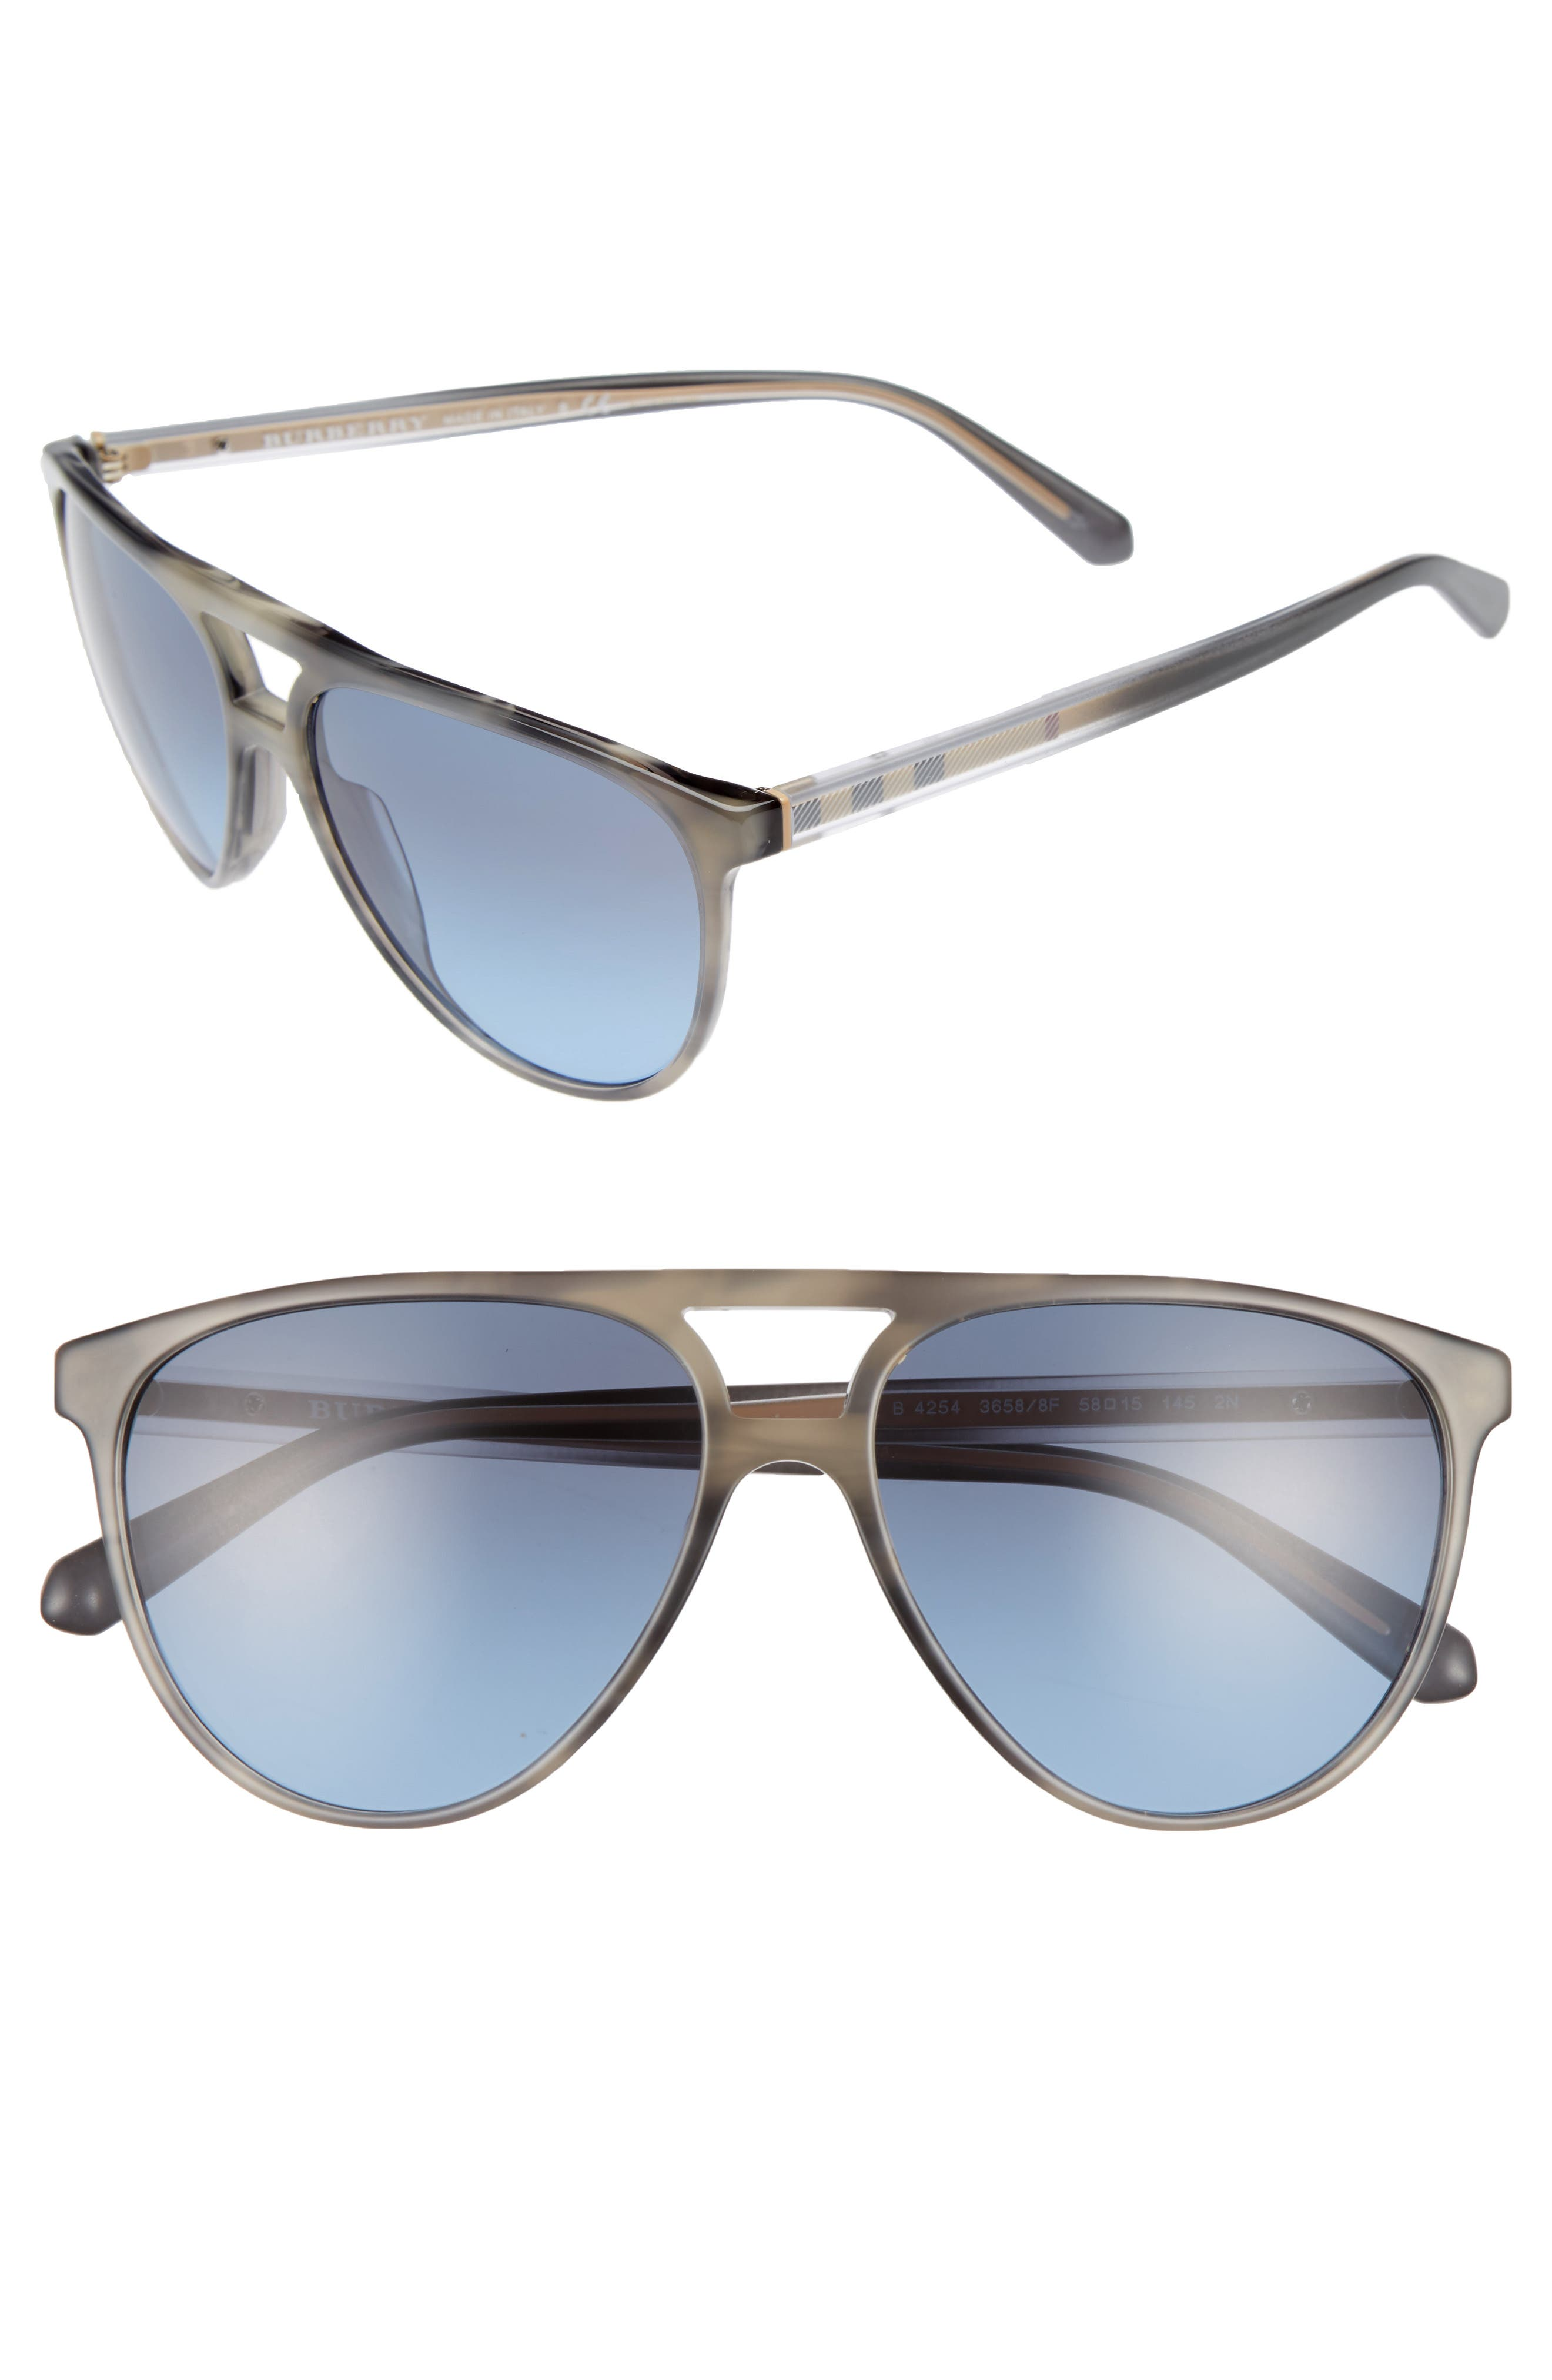 Burberry 58mm Aviator Sunglasses